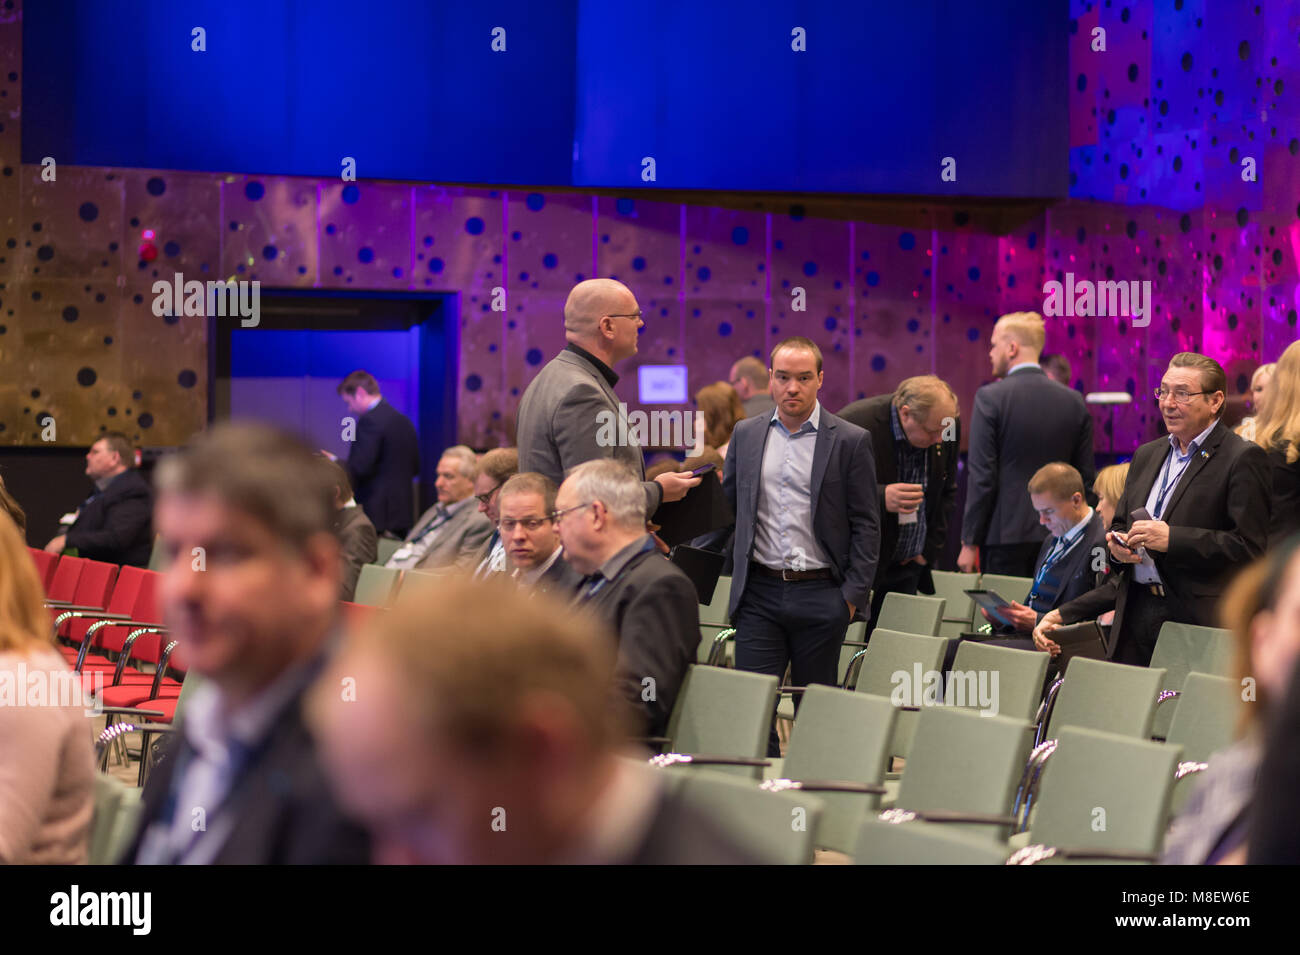 Stockholm, Sweden, March 17, 2018  Sweden Democrats (SD